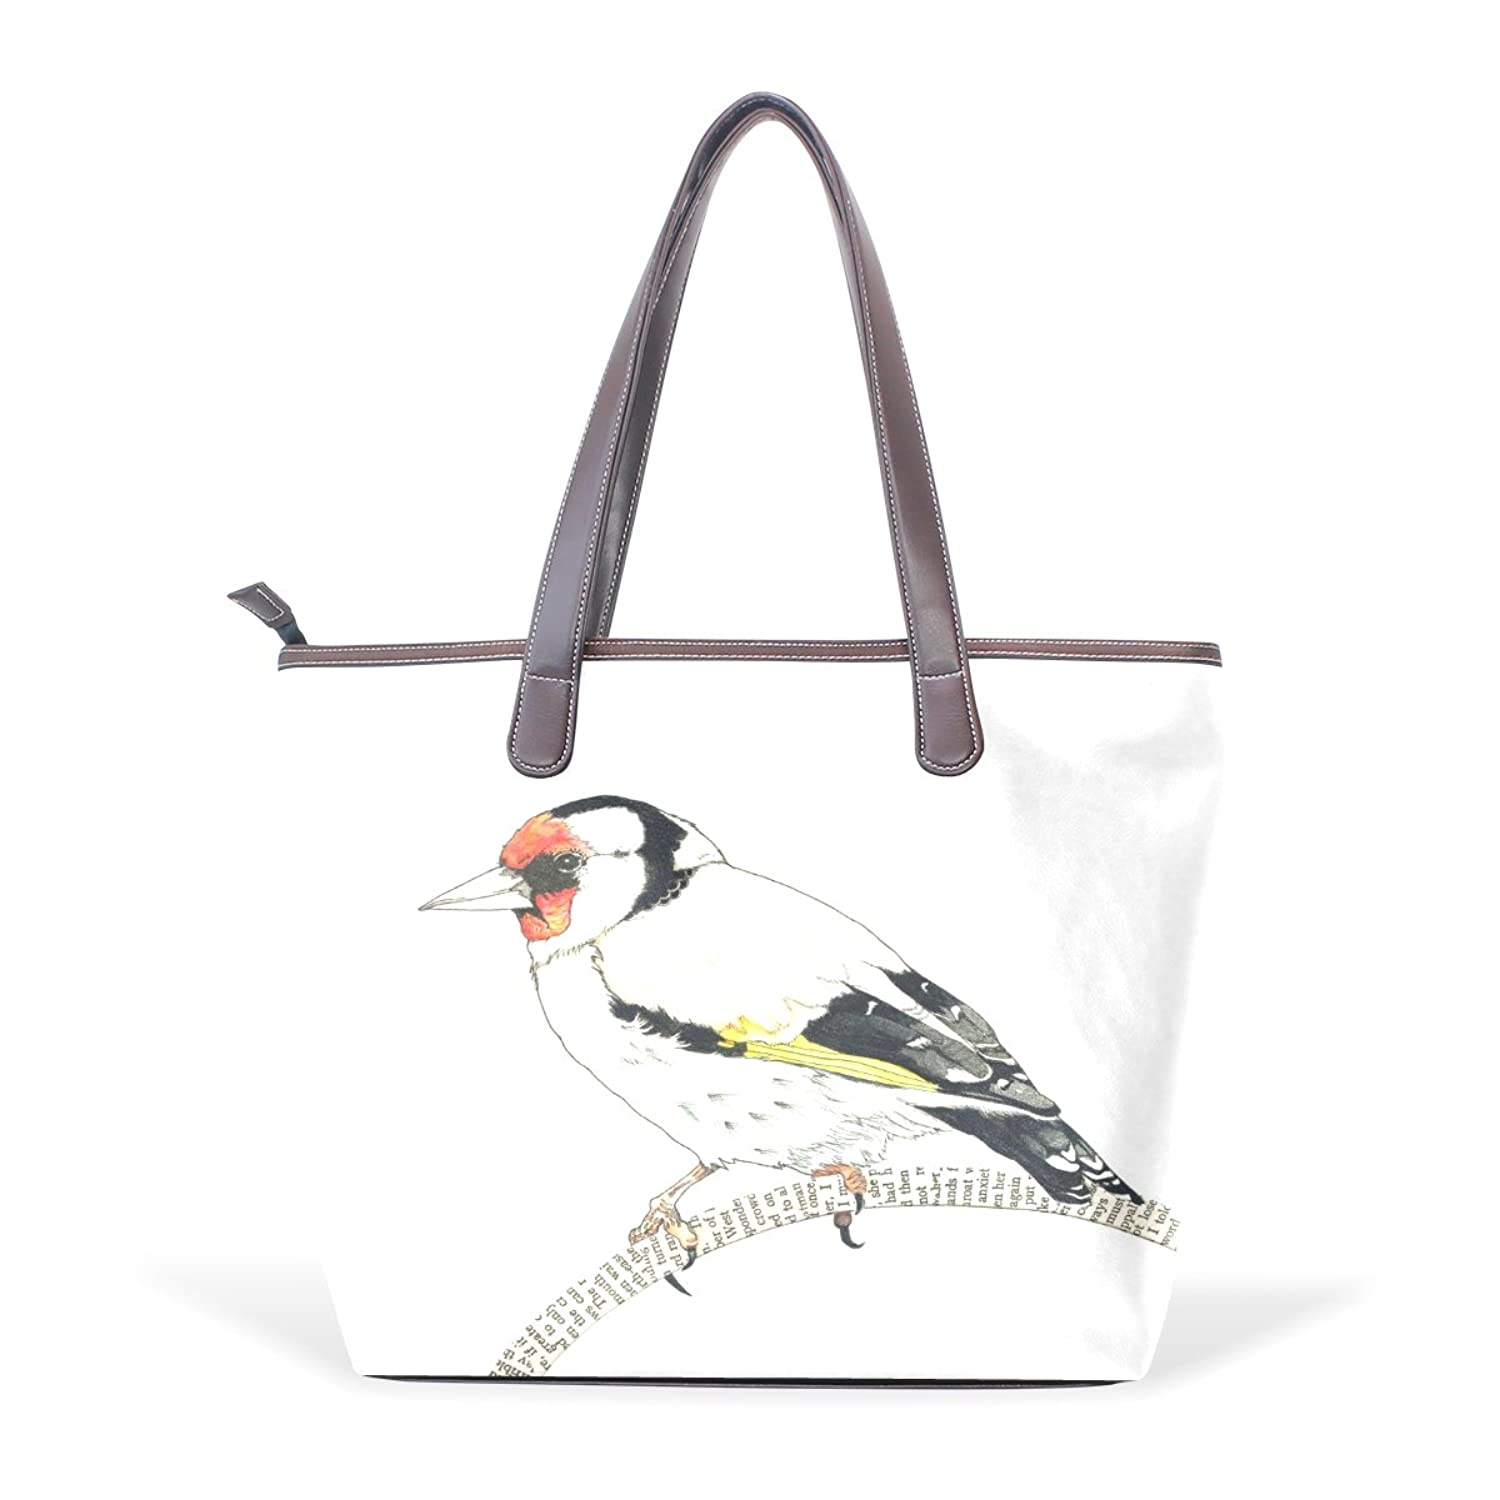 CCBHGY Women's Goldfinch pattern Leather Handbag Zipper Shoulder Bag Tote Bag